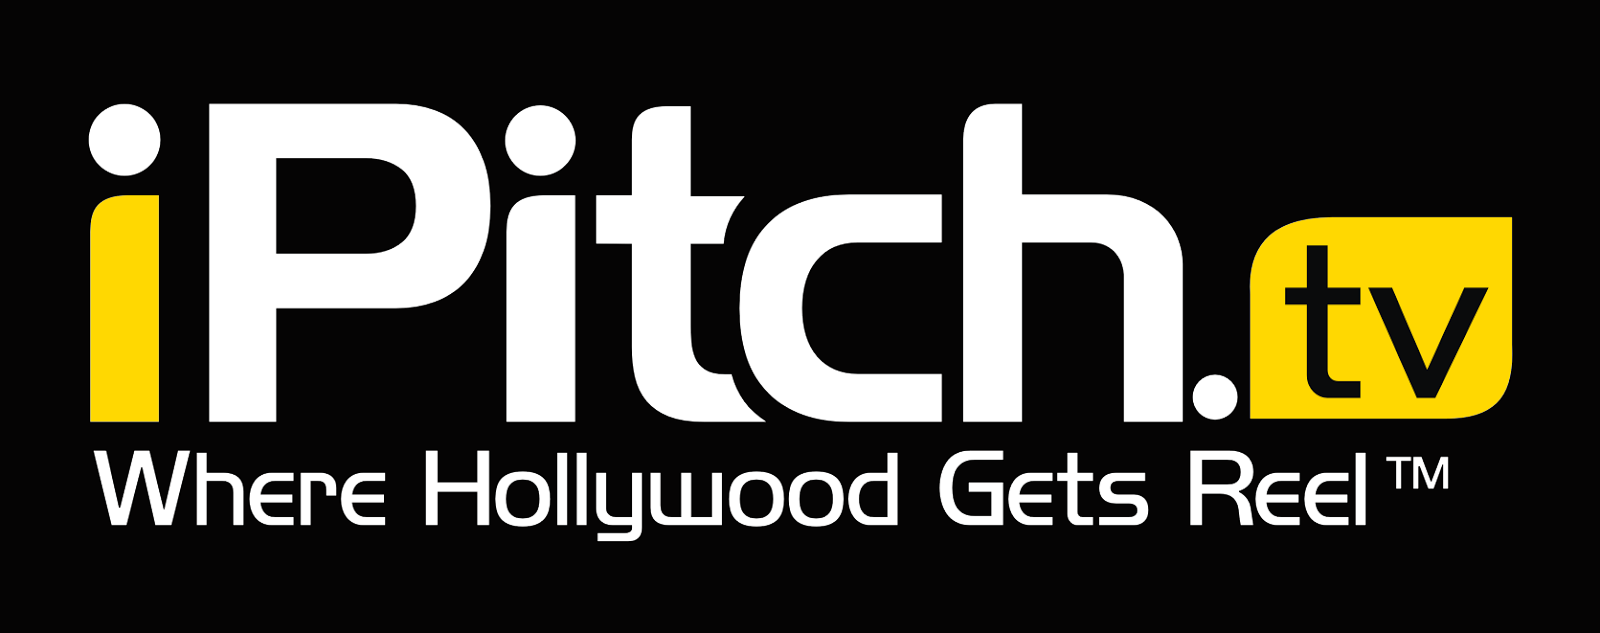 ROFFEKE is proud to partner with ipitch.tv